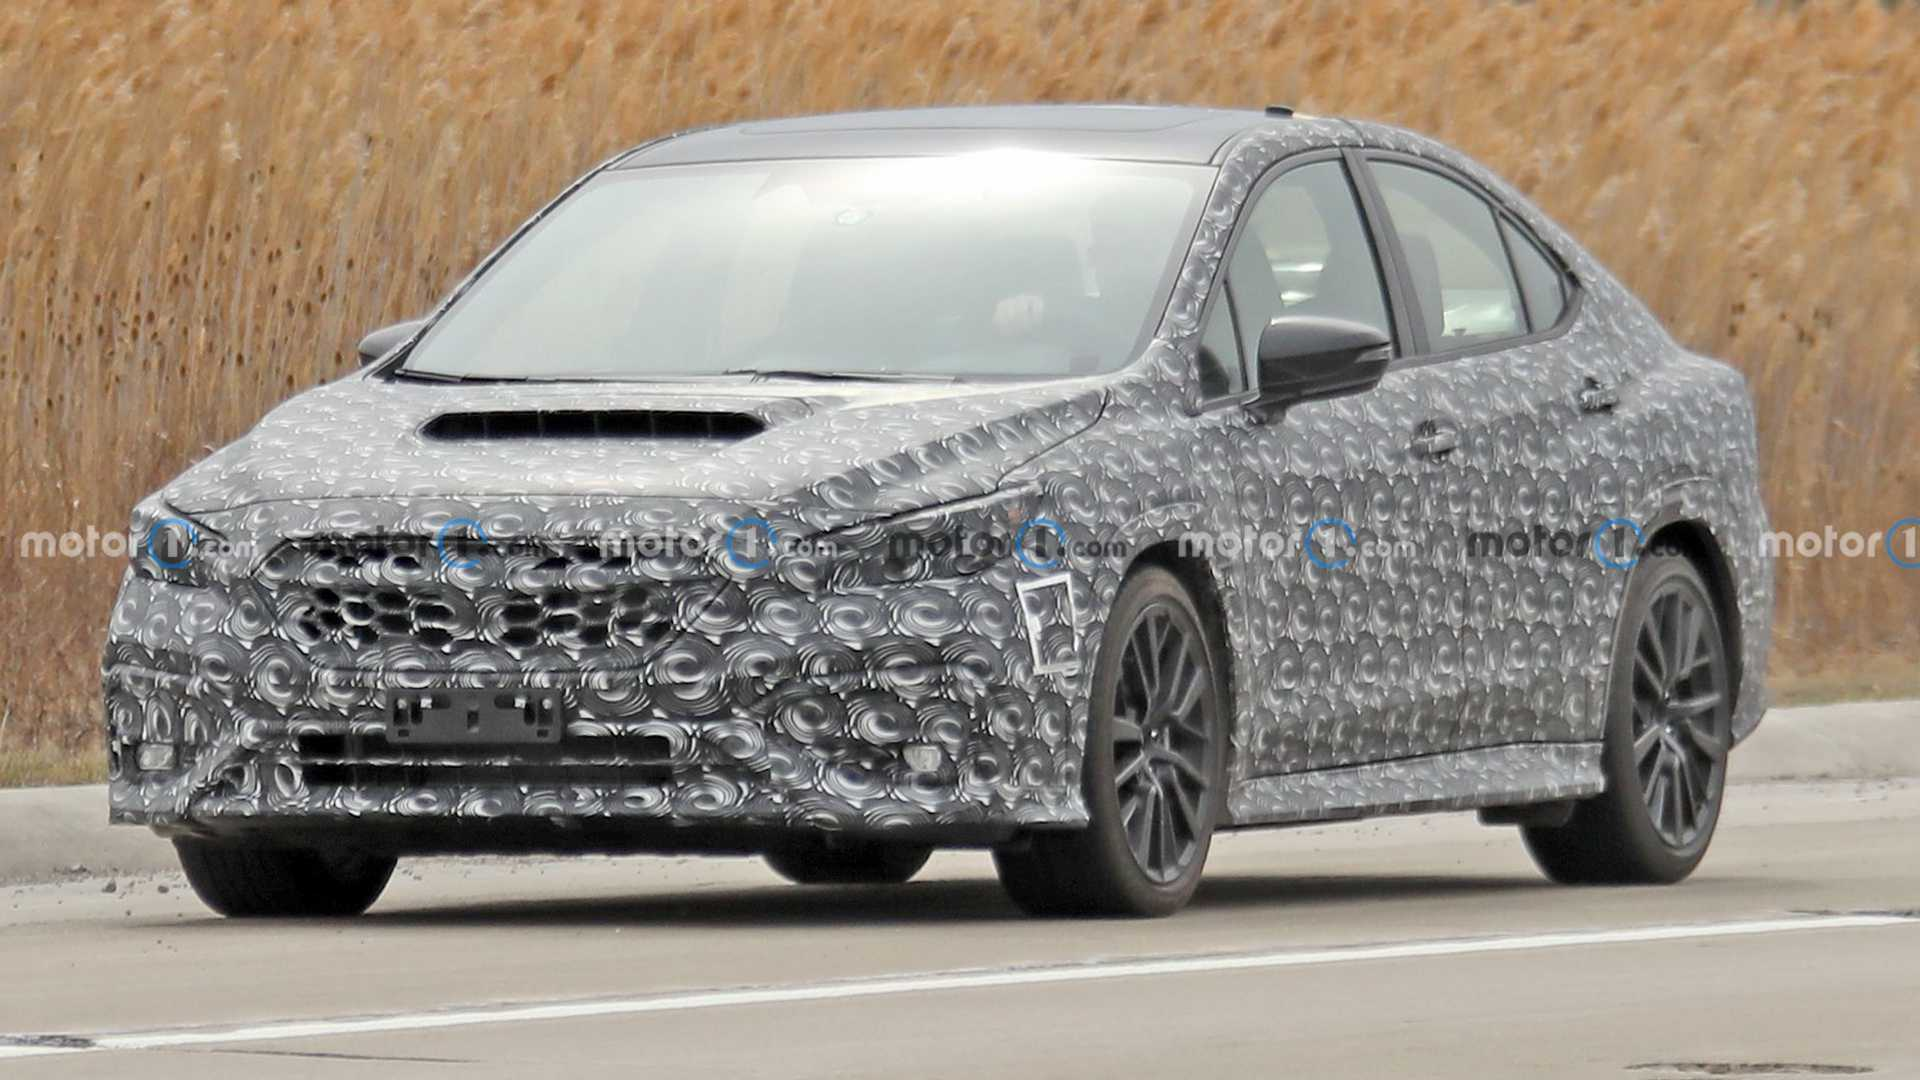 As a staple model in the Subaru lineup, the car manufacturer makes every effort to keep the WRX up to date. The next generation will debut during the New York International Auto Show set to open on August 19, 2021.